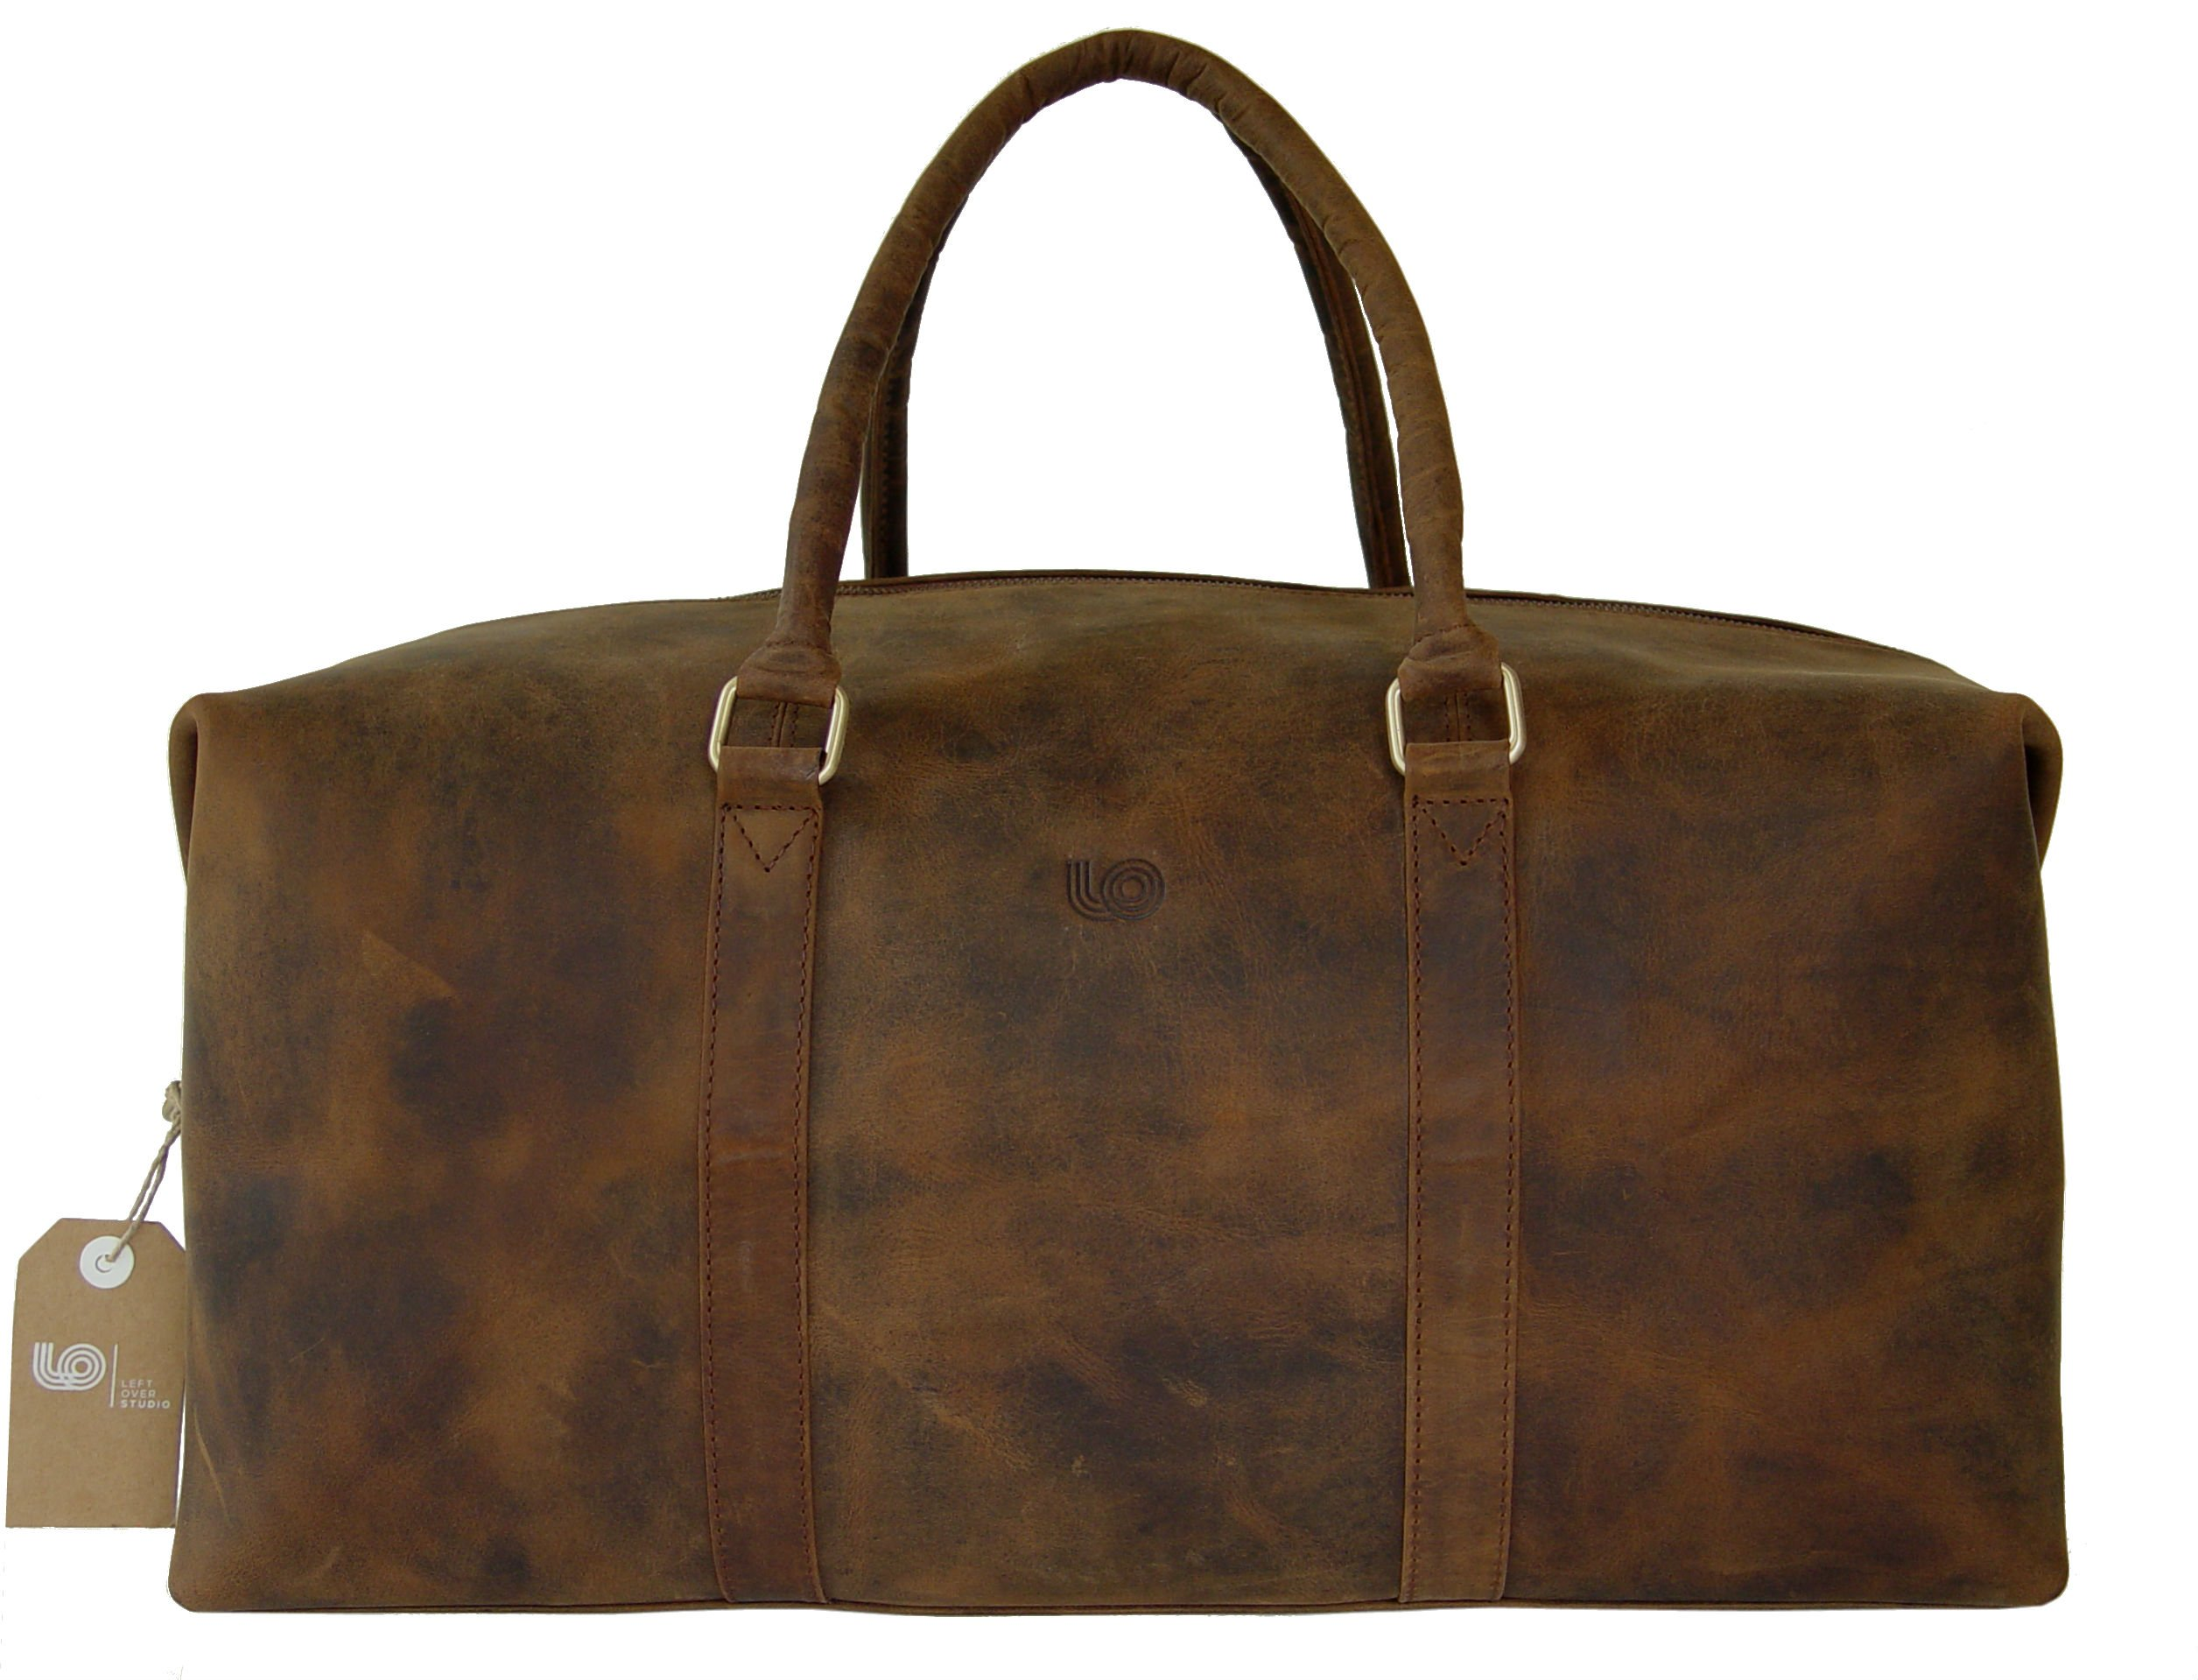 LeftOver Studio Expandable Weekend Overnight Travel Duffel Bag in Thick Oil Pull Hunter Water Buffalo Leather by Leftover Studio (Image #2)